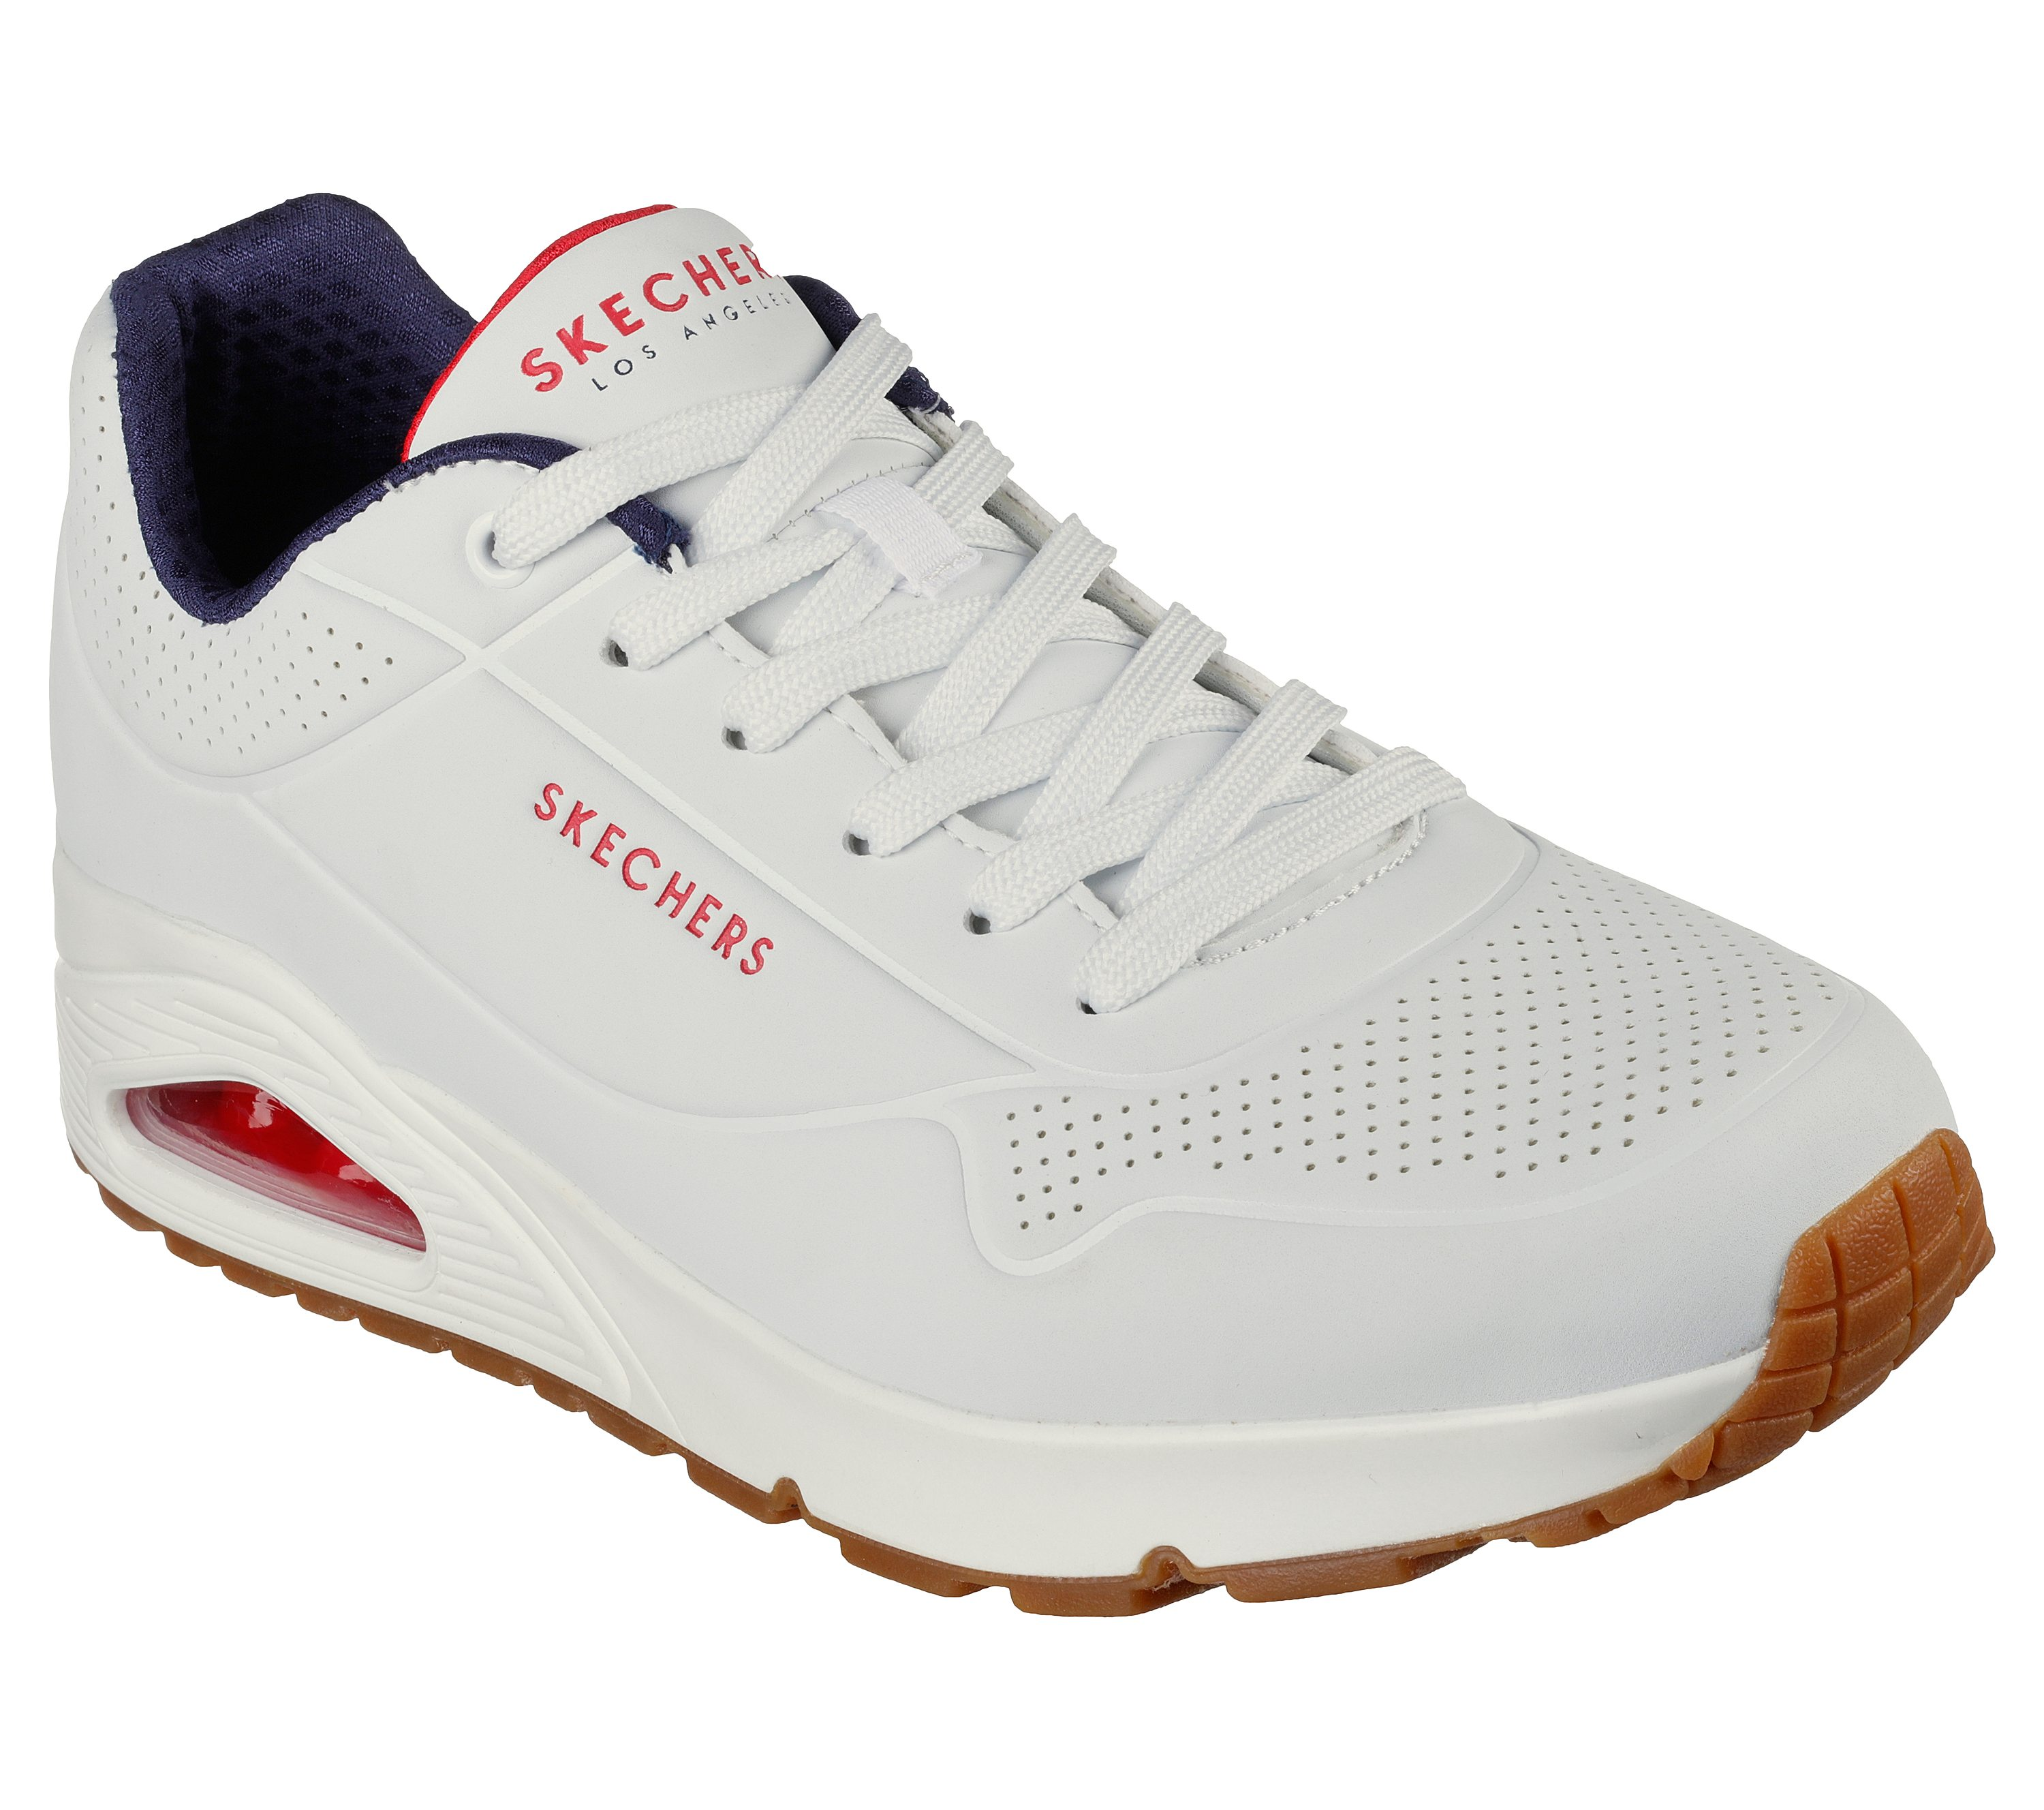 Shop the Uno - Stand On Air   SKECHERS